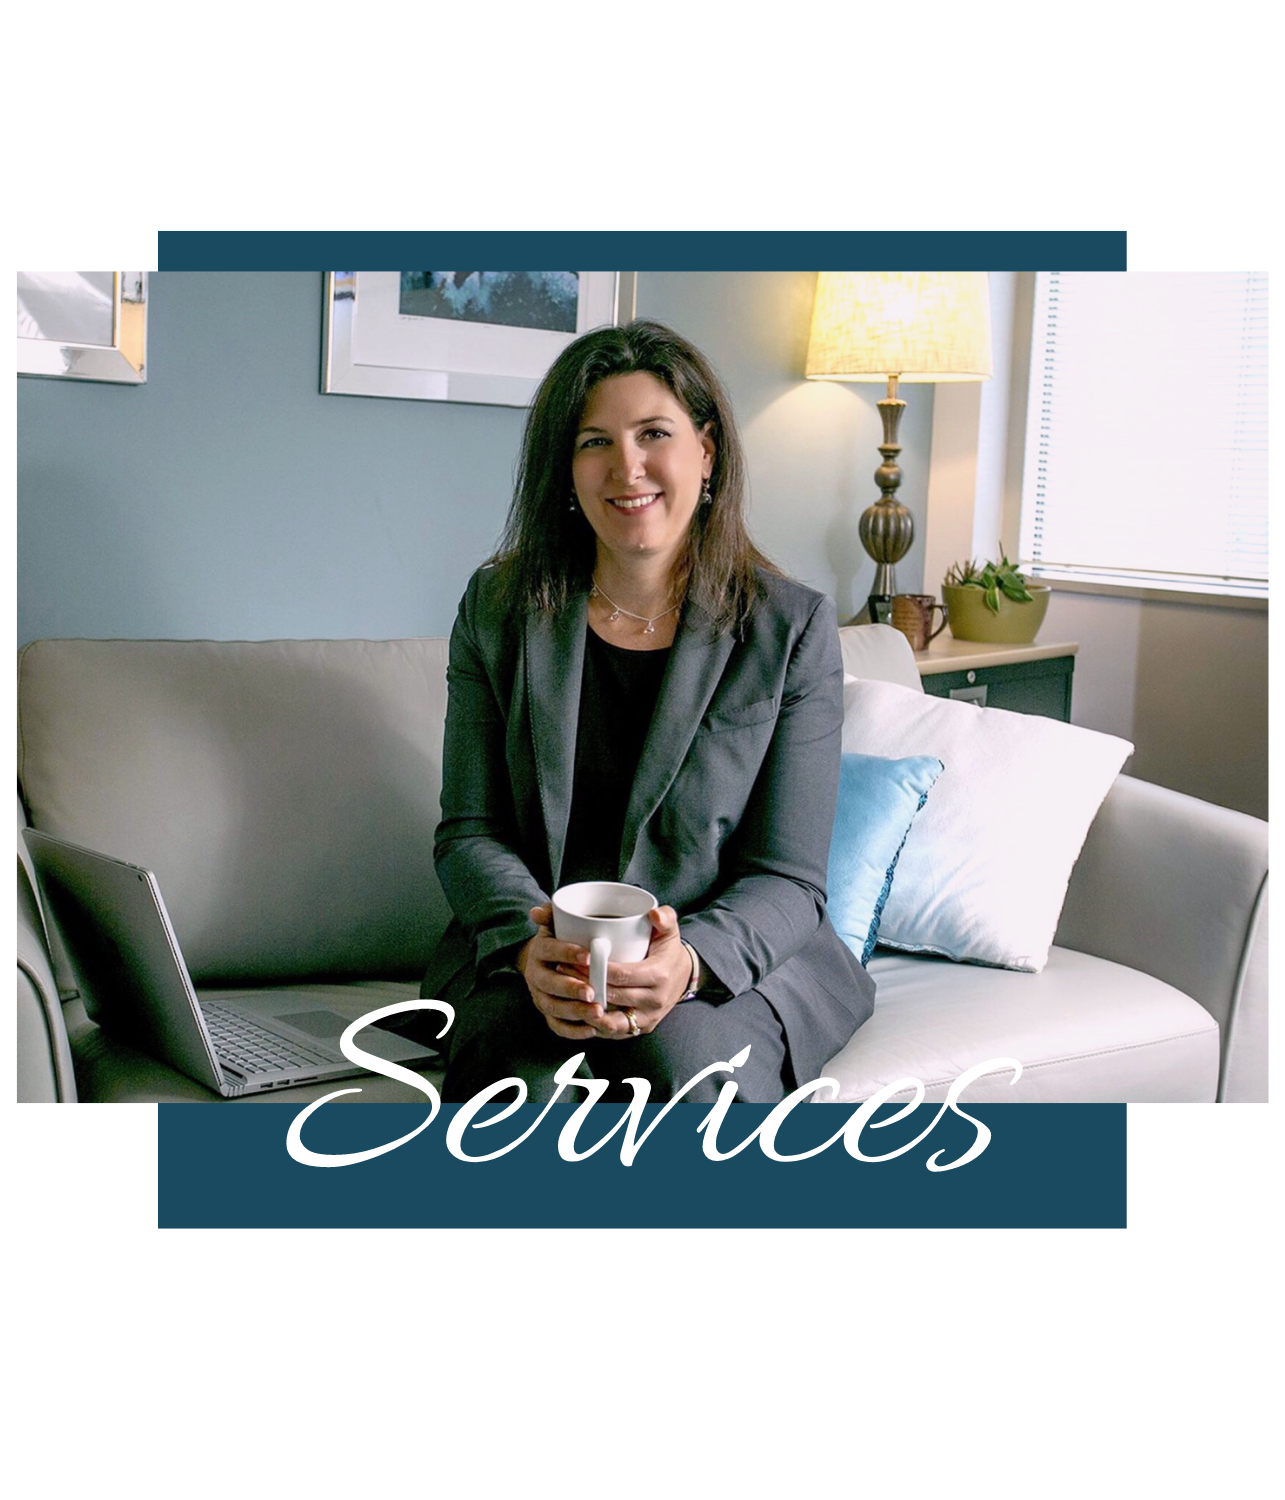 Therapy Services - While most of Angela's practice consists of individual counseling for adults (age 17+), she also provides family counseling and couples counseling on a limited basis.